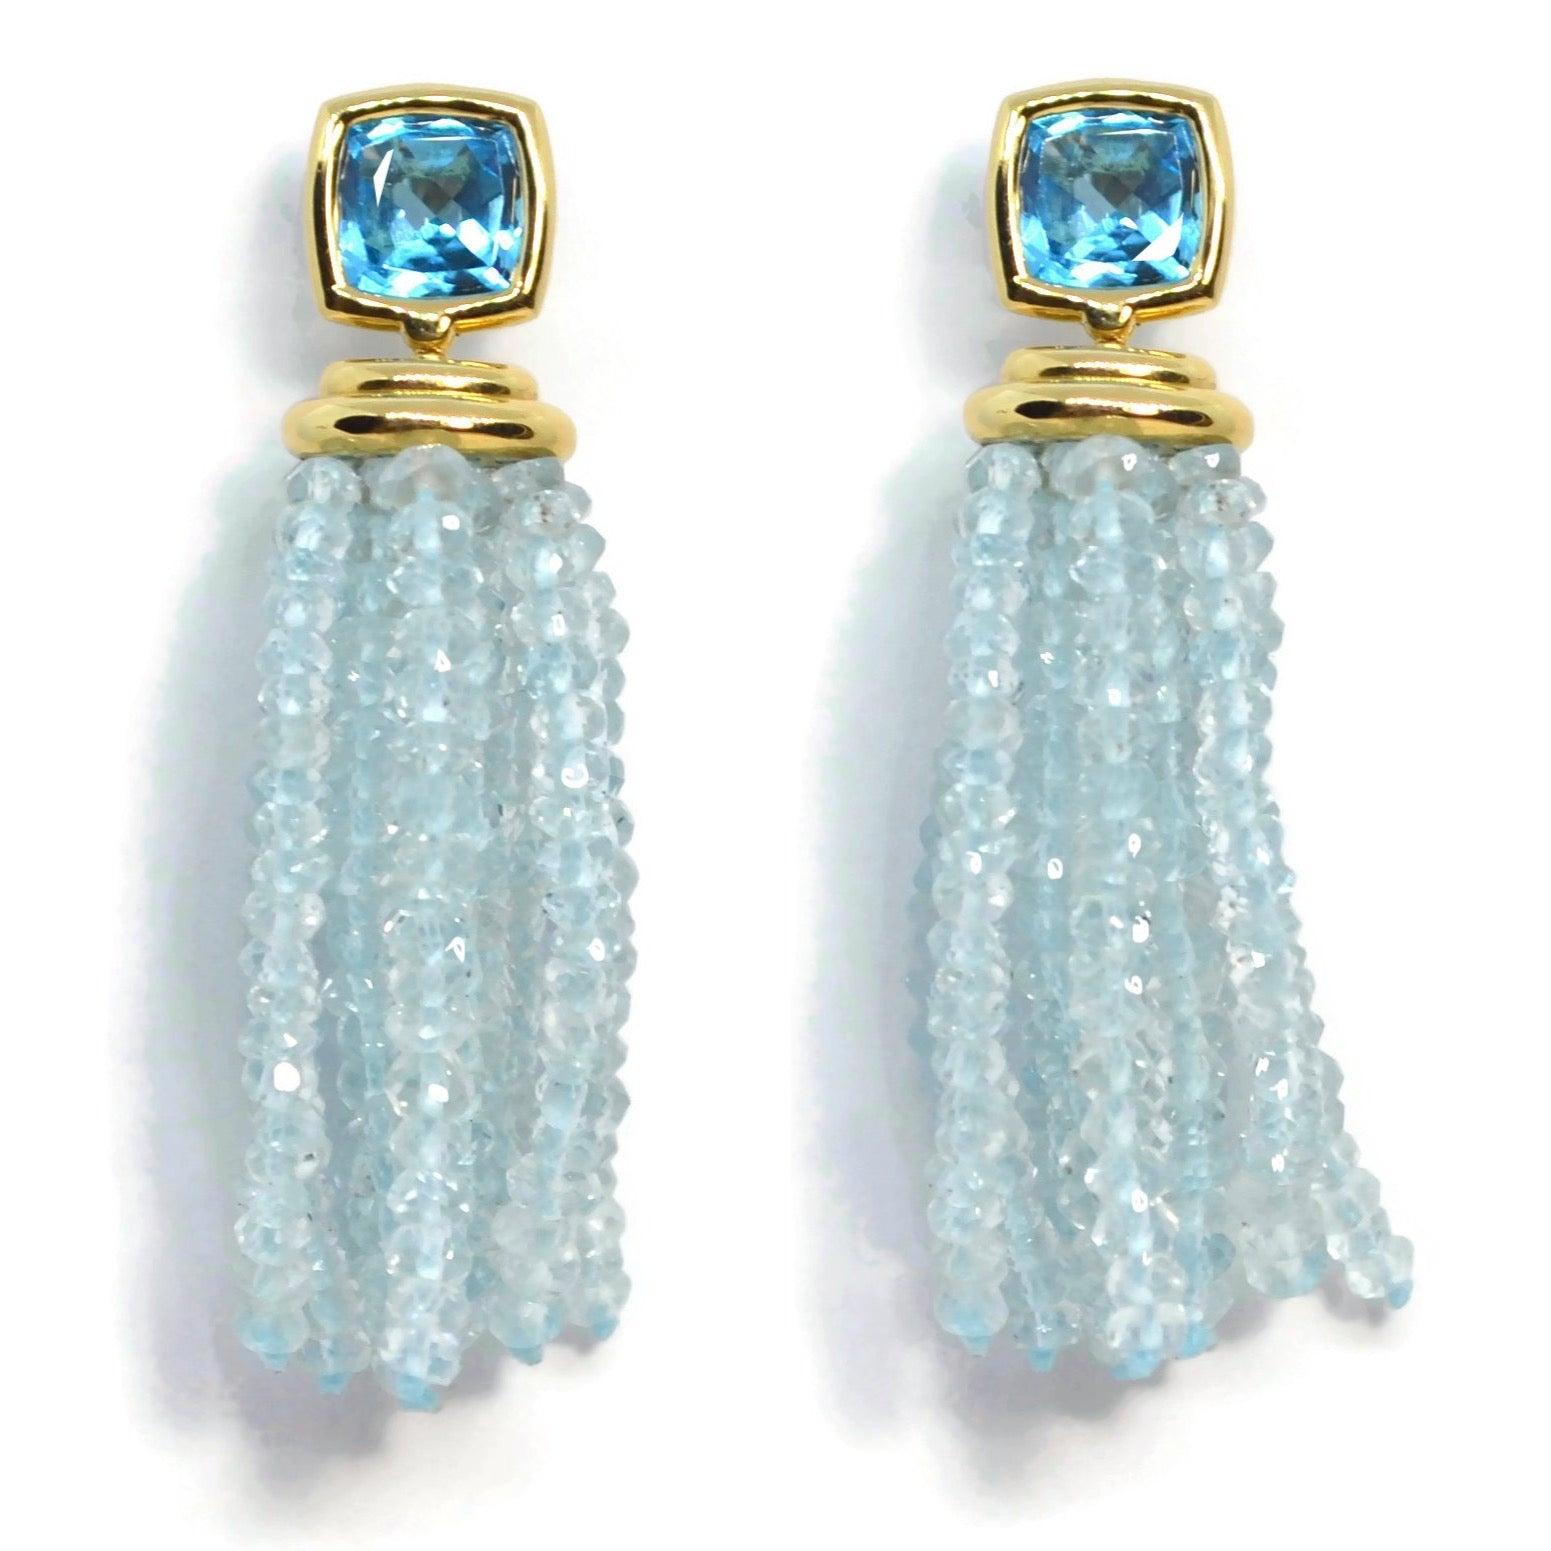 A-FURST-GAIA-TASSEL-EARRINGS-SWISS-BLUE-TOPAZ-AQUAMARINE-YELLOW-GOLD-O1780GUSH_1